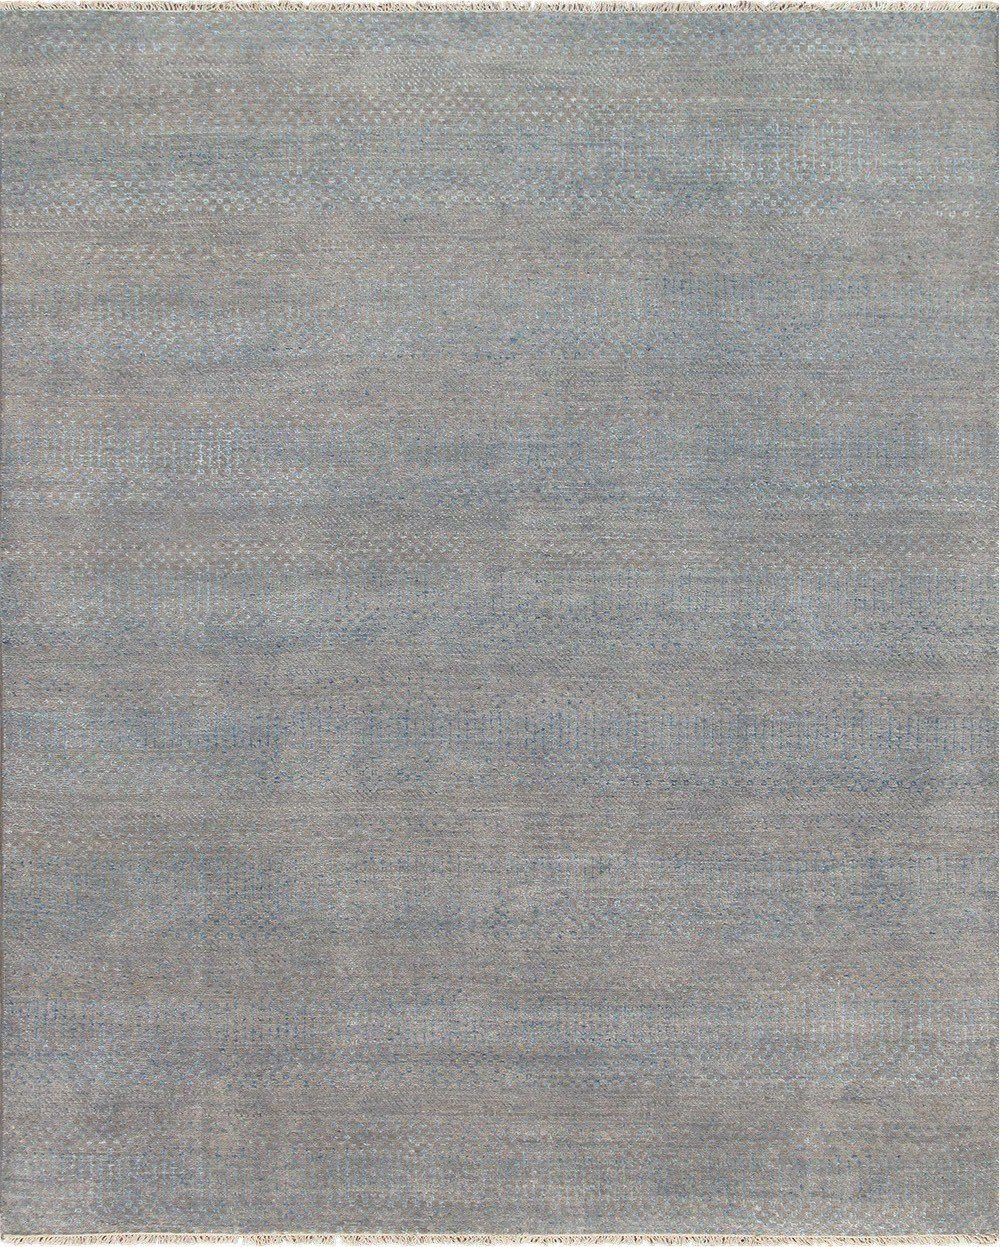 8' X 10' Contemporary Rug Blue and Taupe-Area Rugs-Rug Shop and More